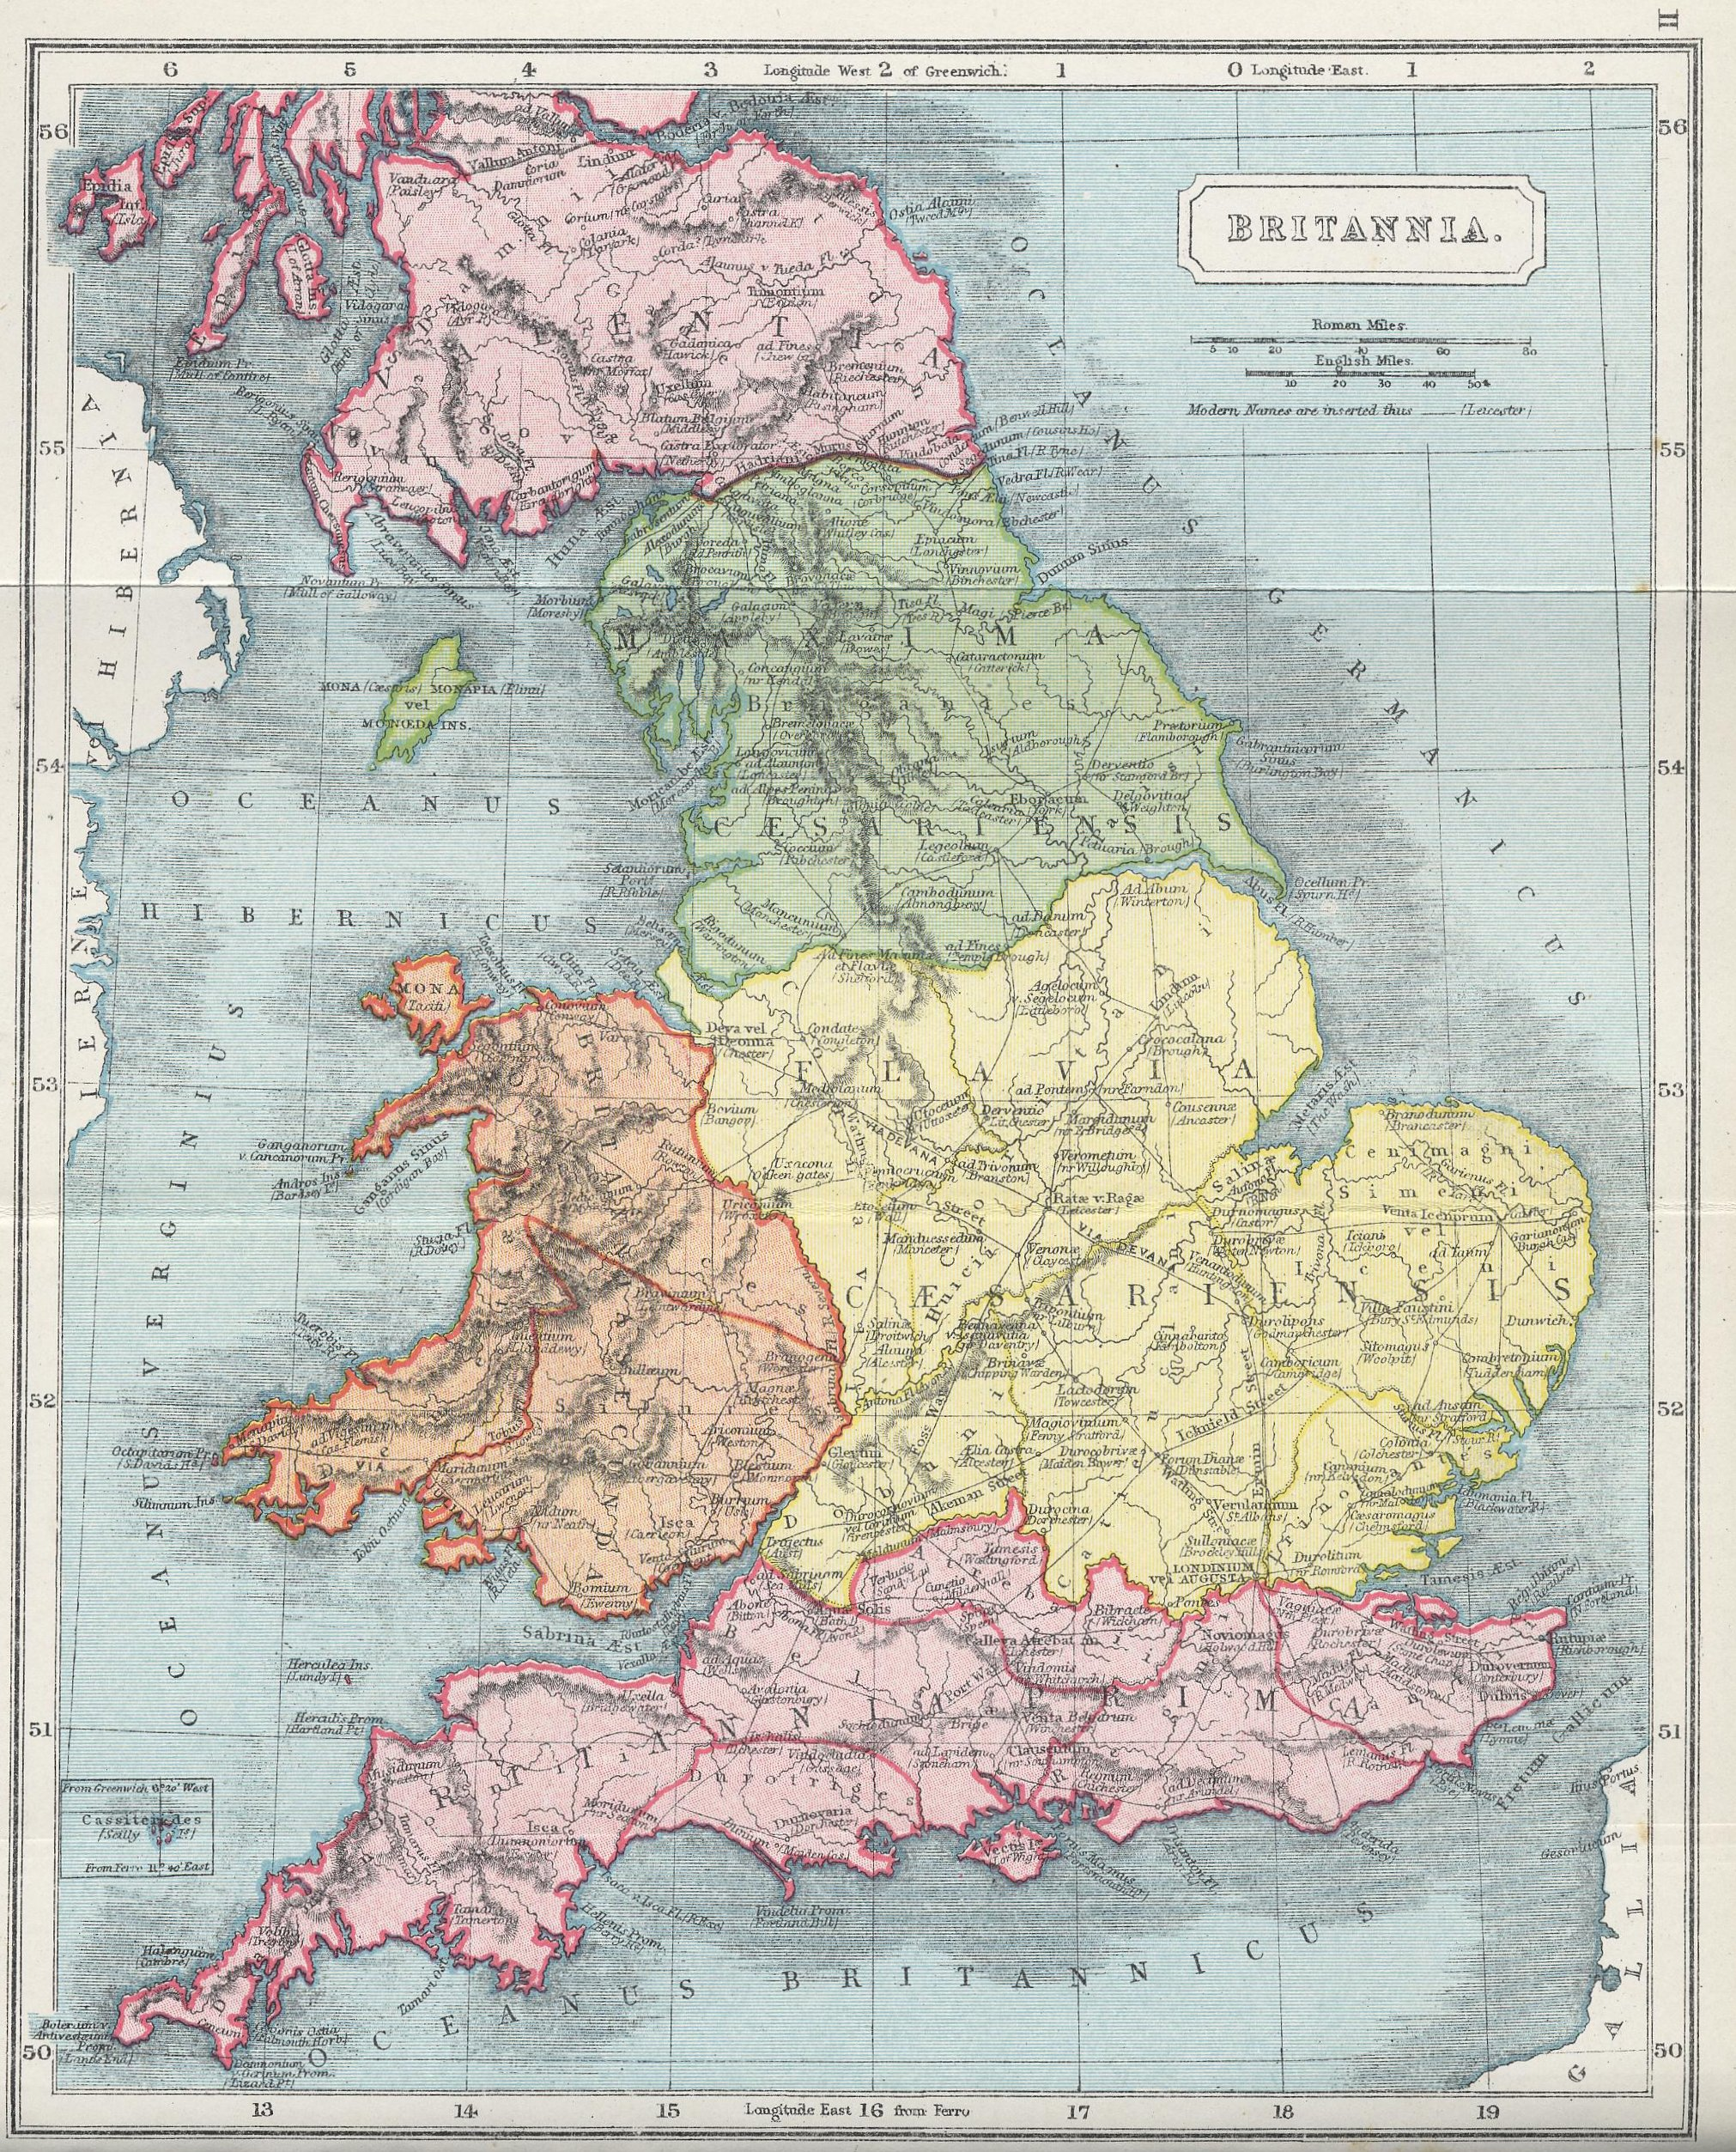 Map of Britain70 BC - AD 180